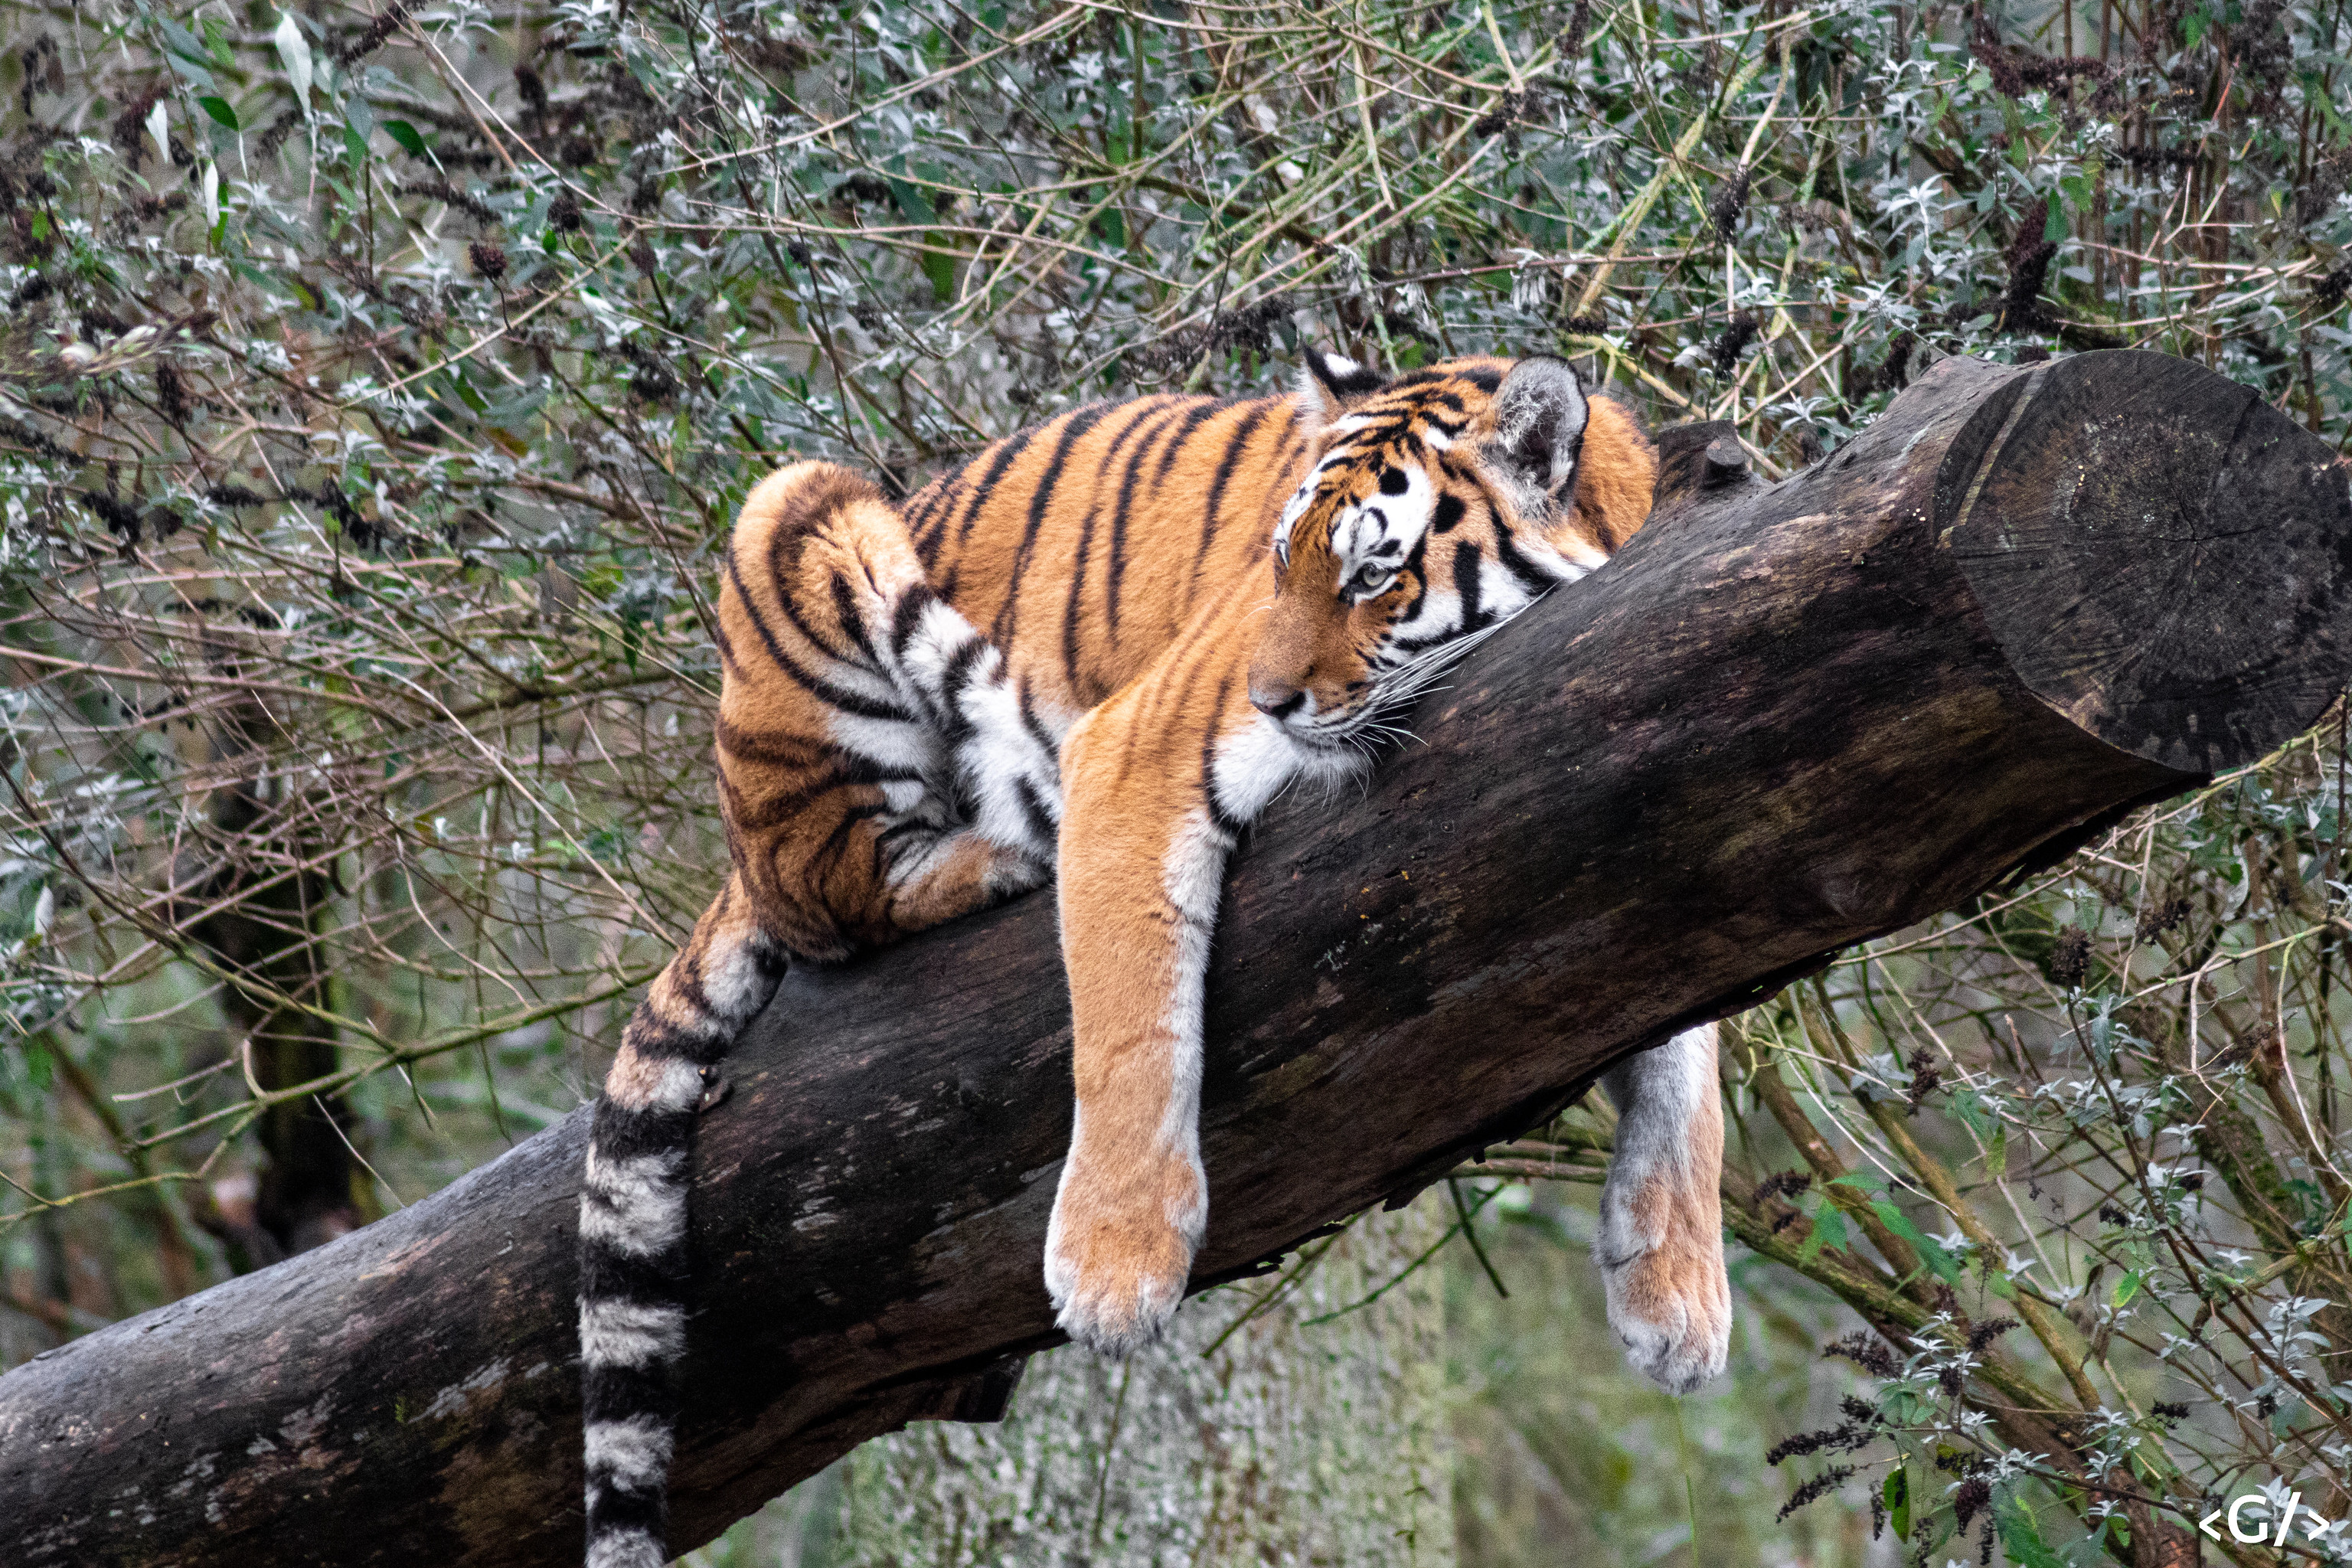 A tiger flumping on a tree